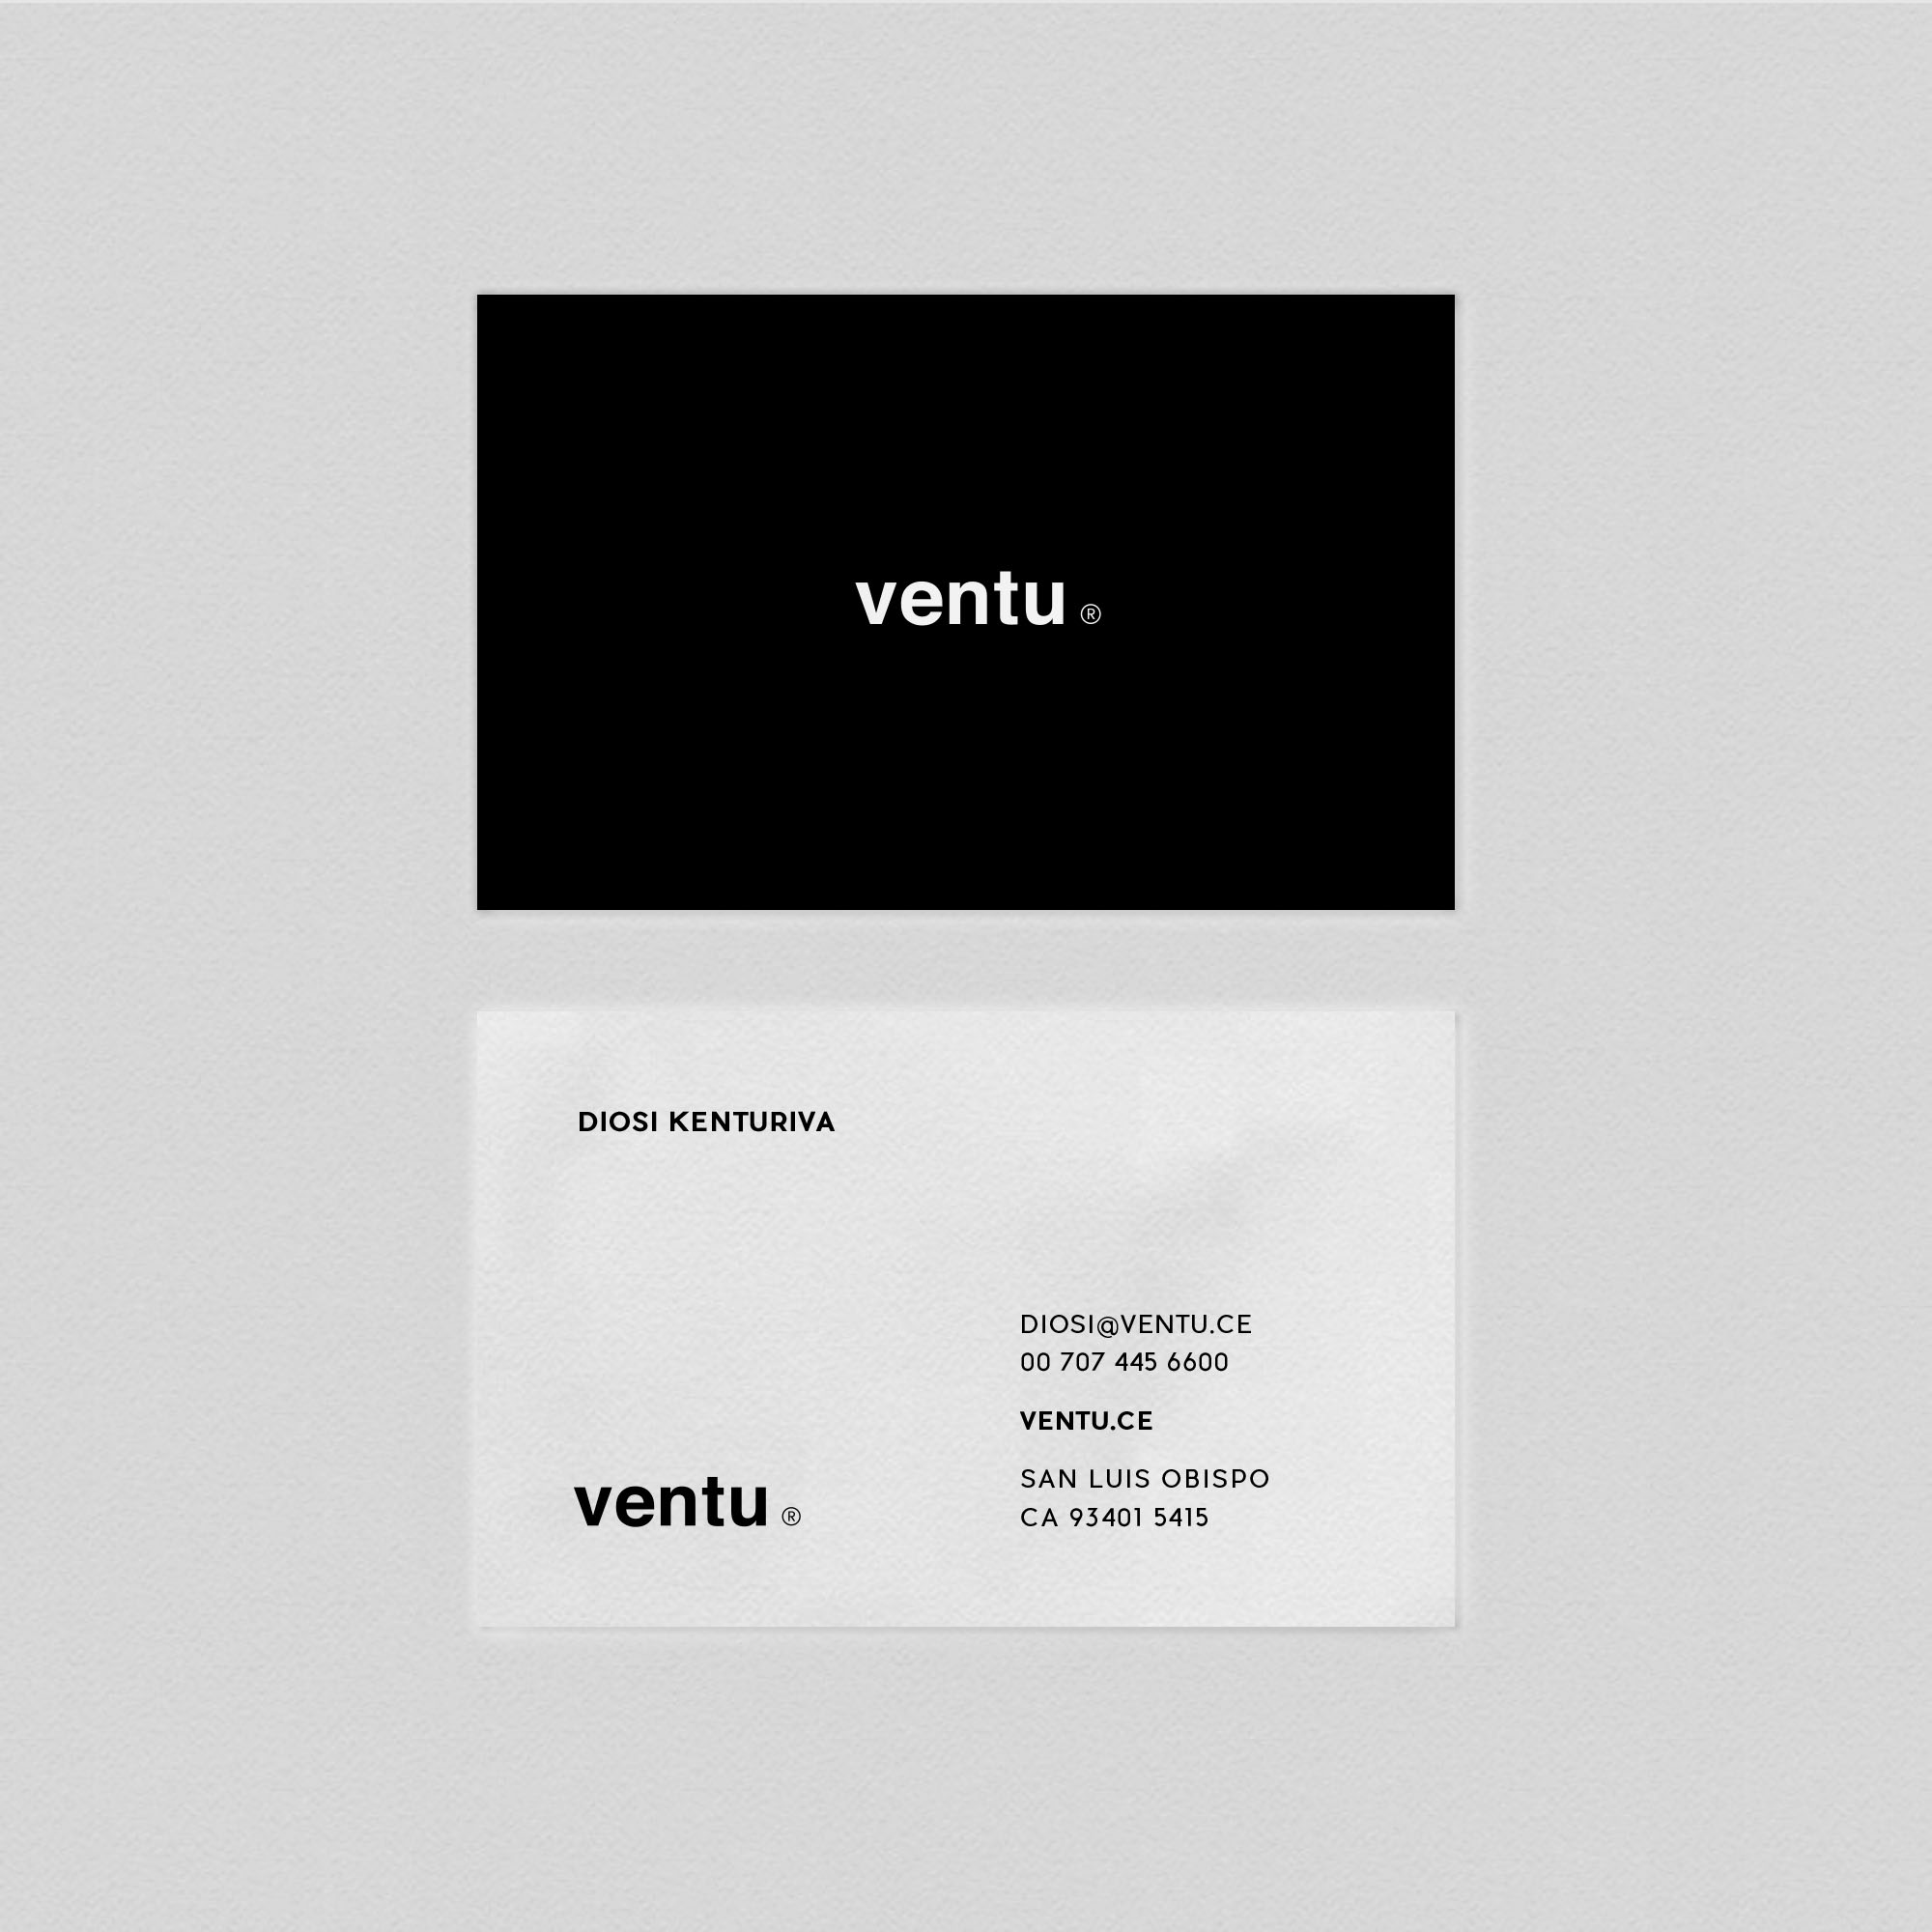 Business Card Template - Ventu